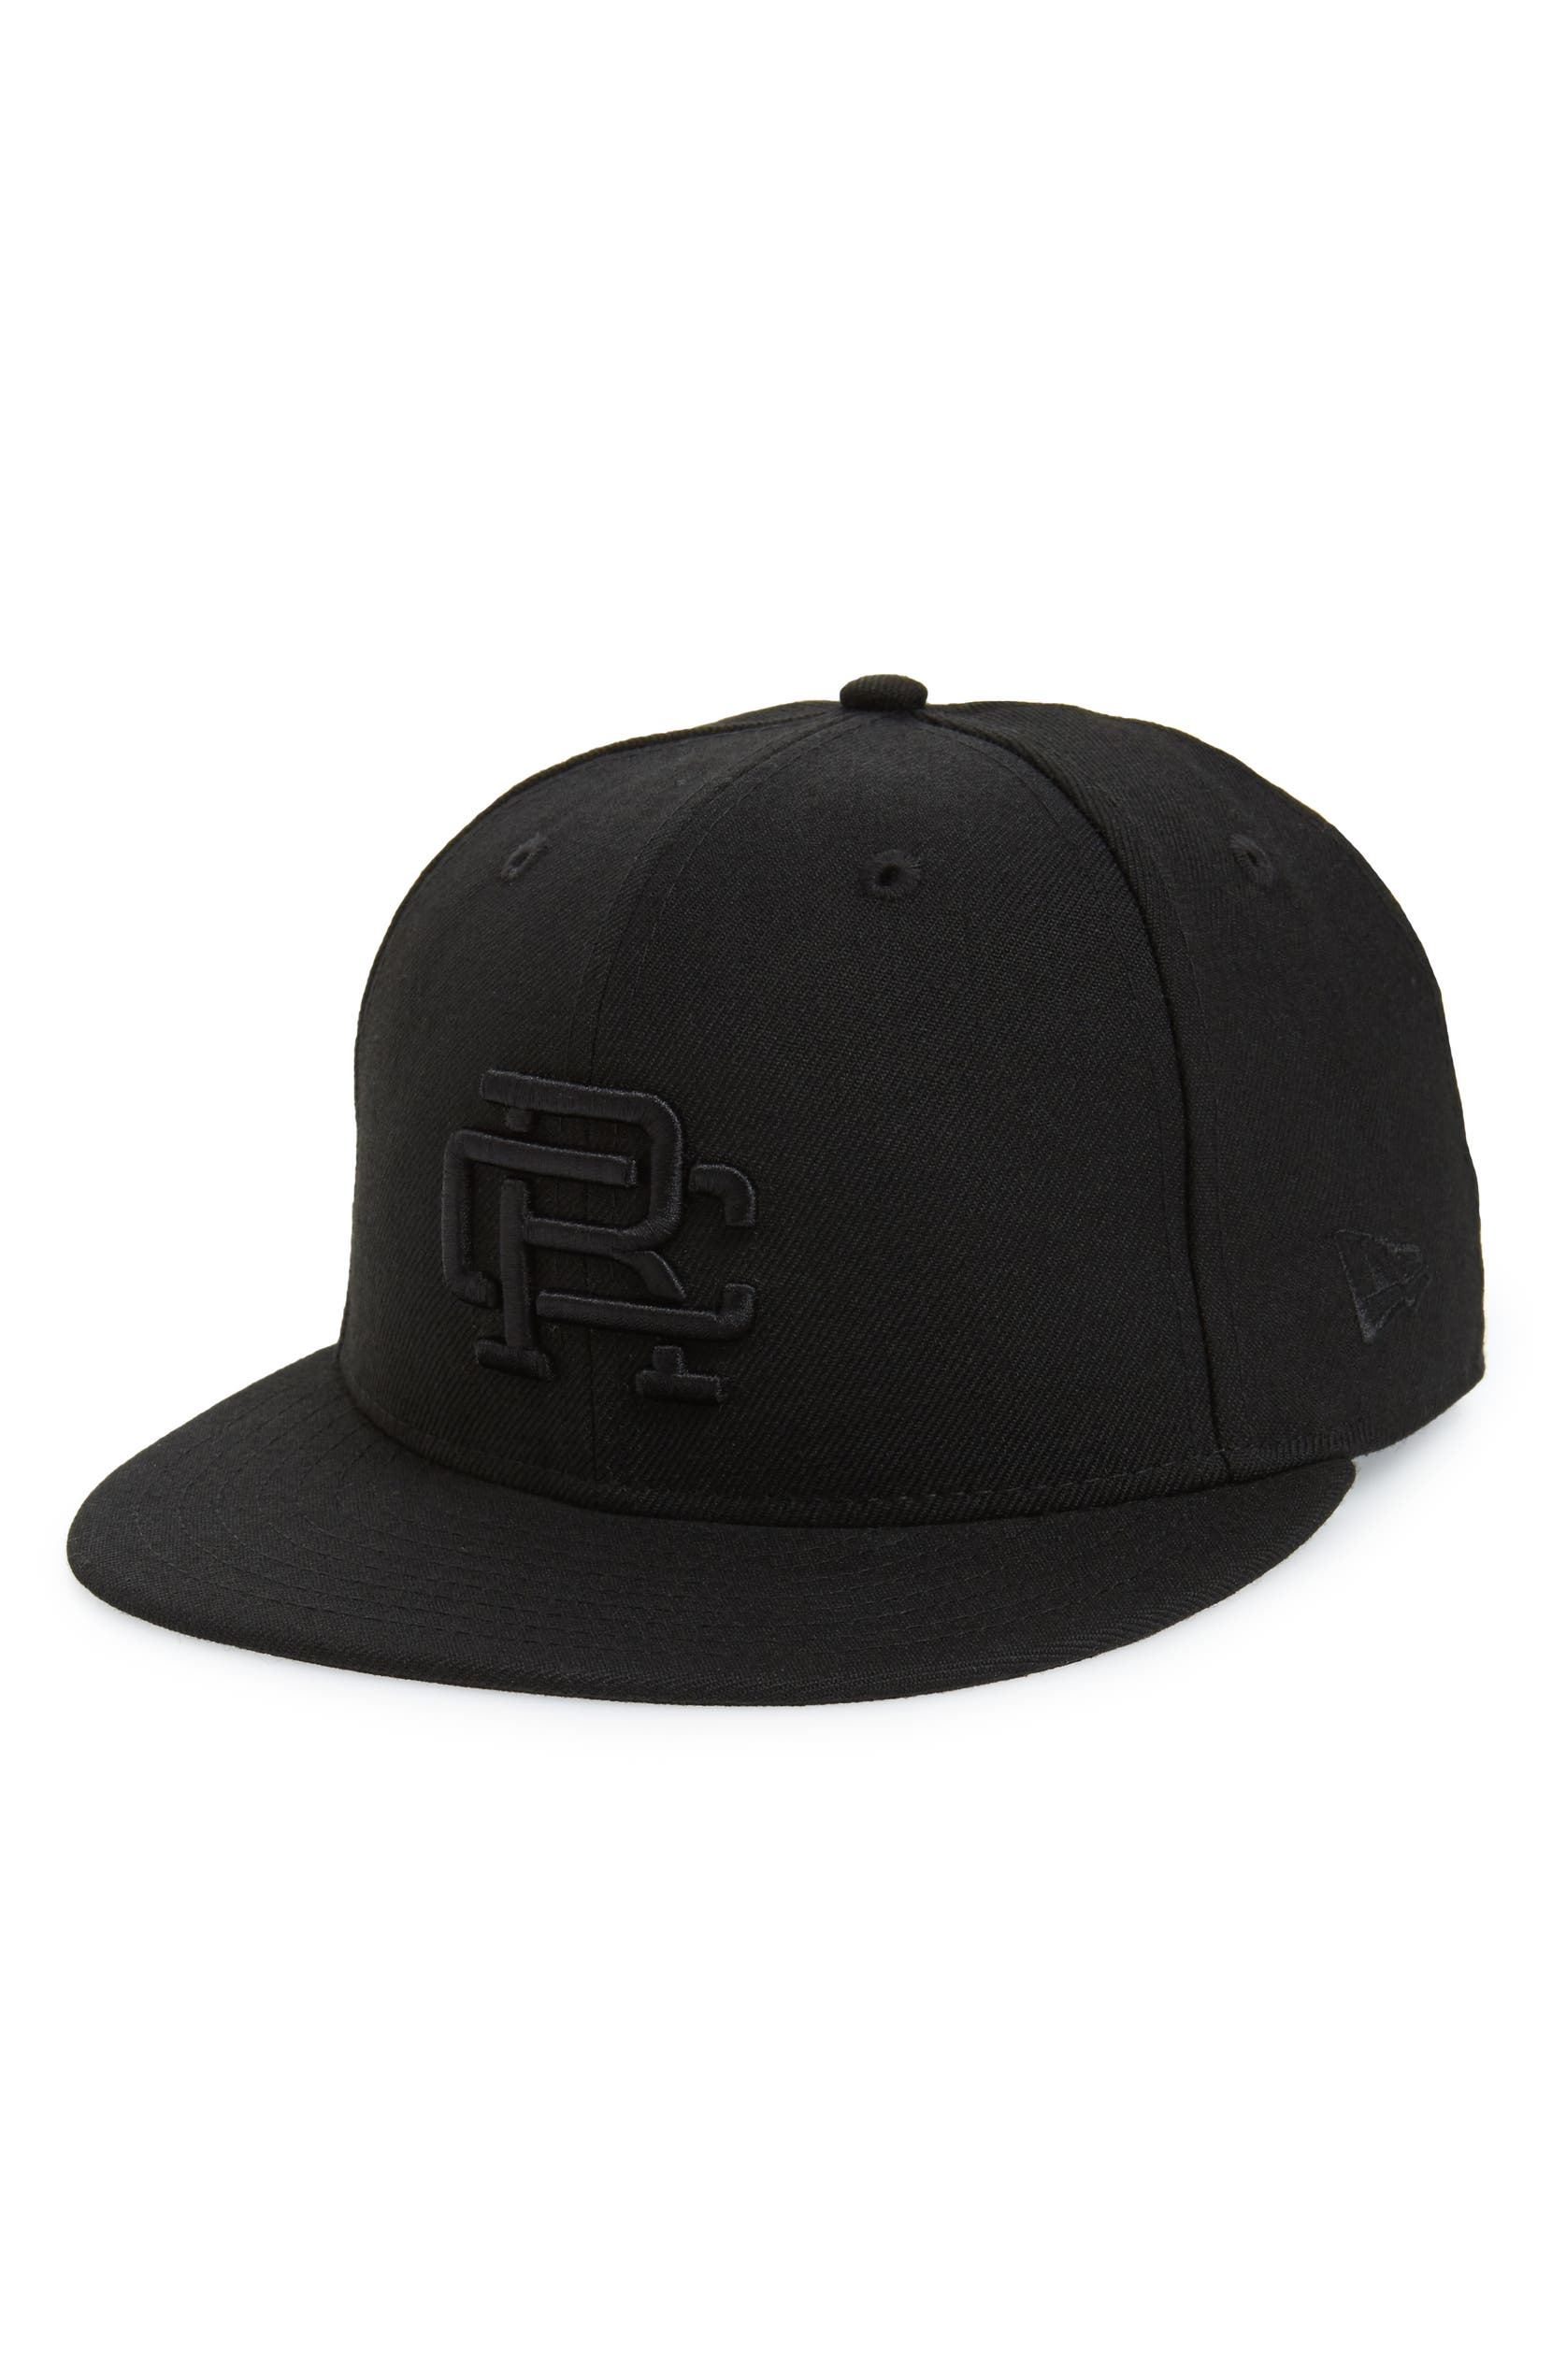 11f12553242 Reigning Champ New Era Fitted Baseball Cap